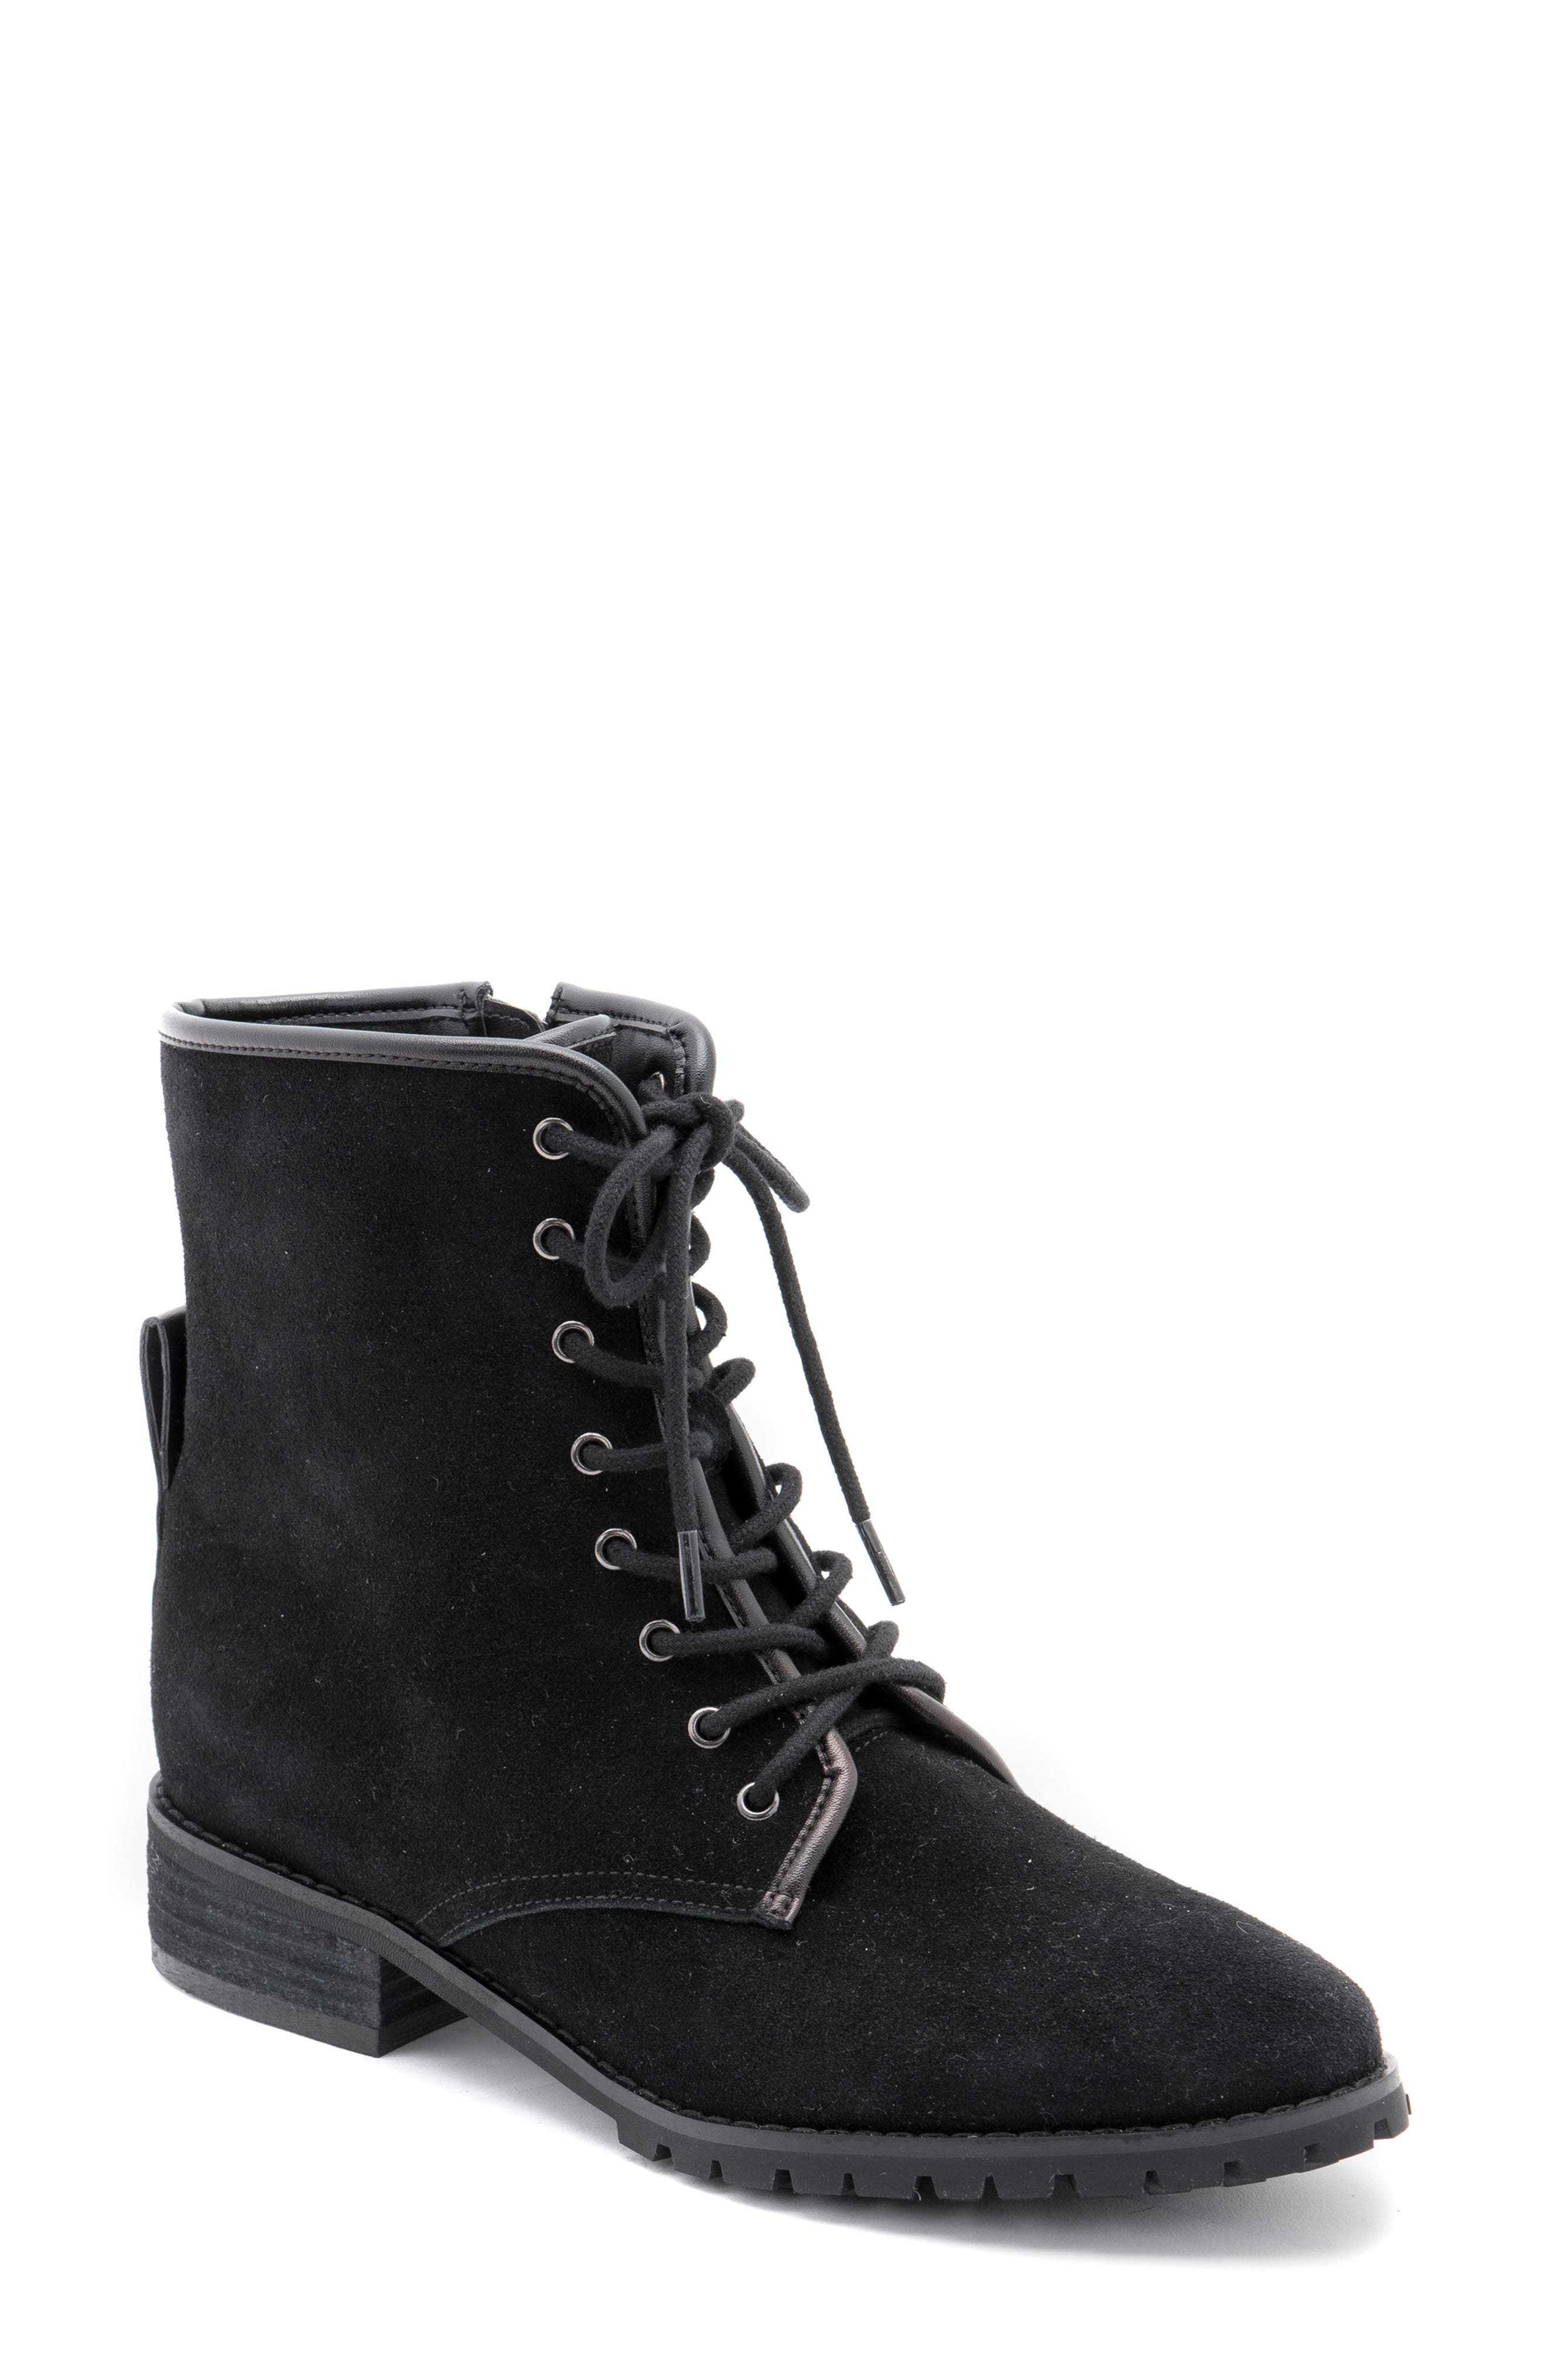 Image of Blondo Prima Suede Waterproof Lace-Up Boot